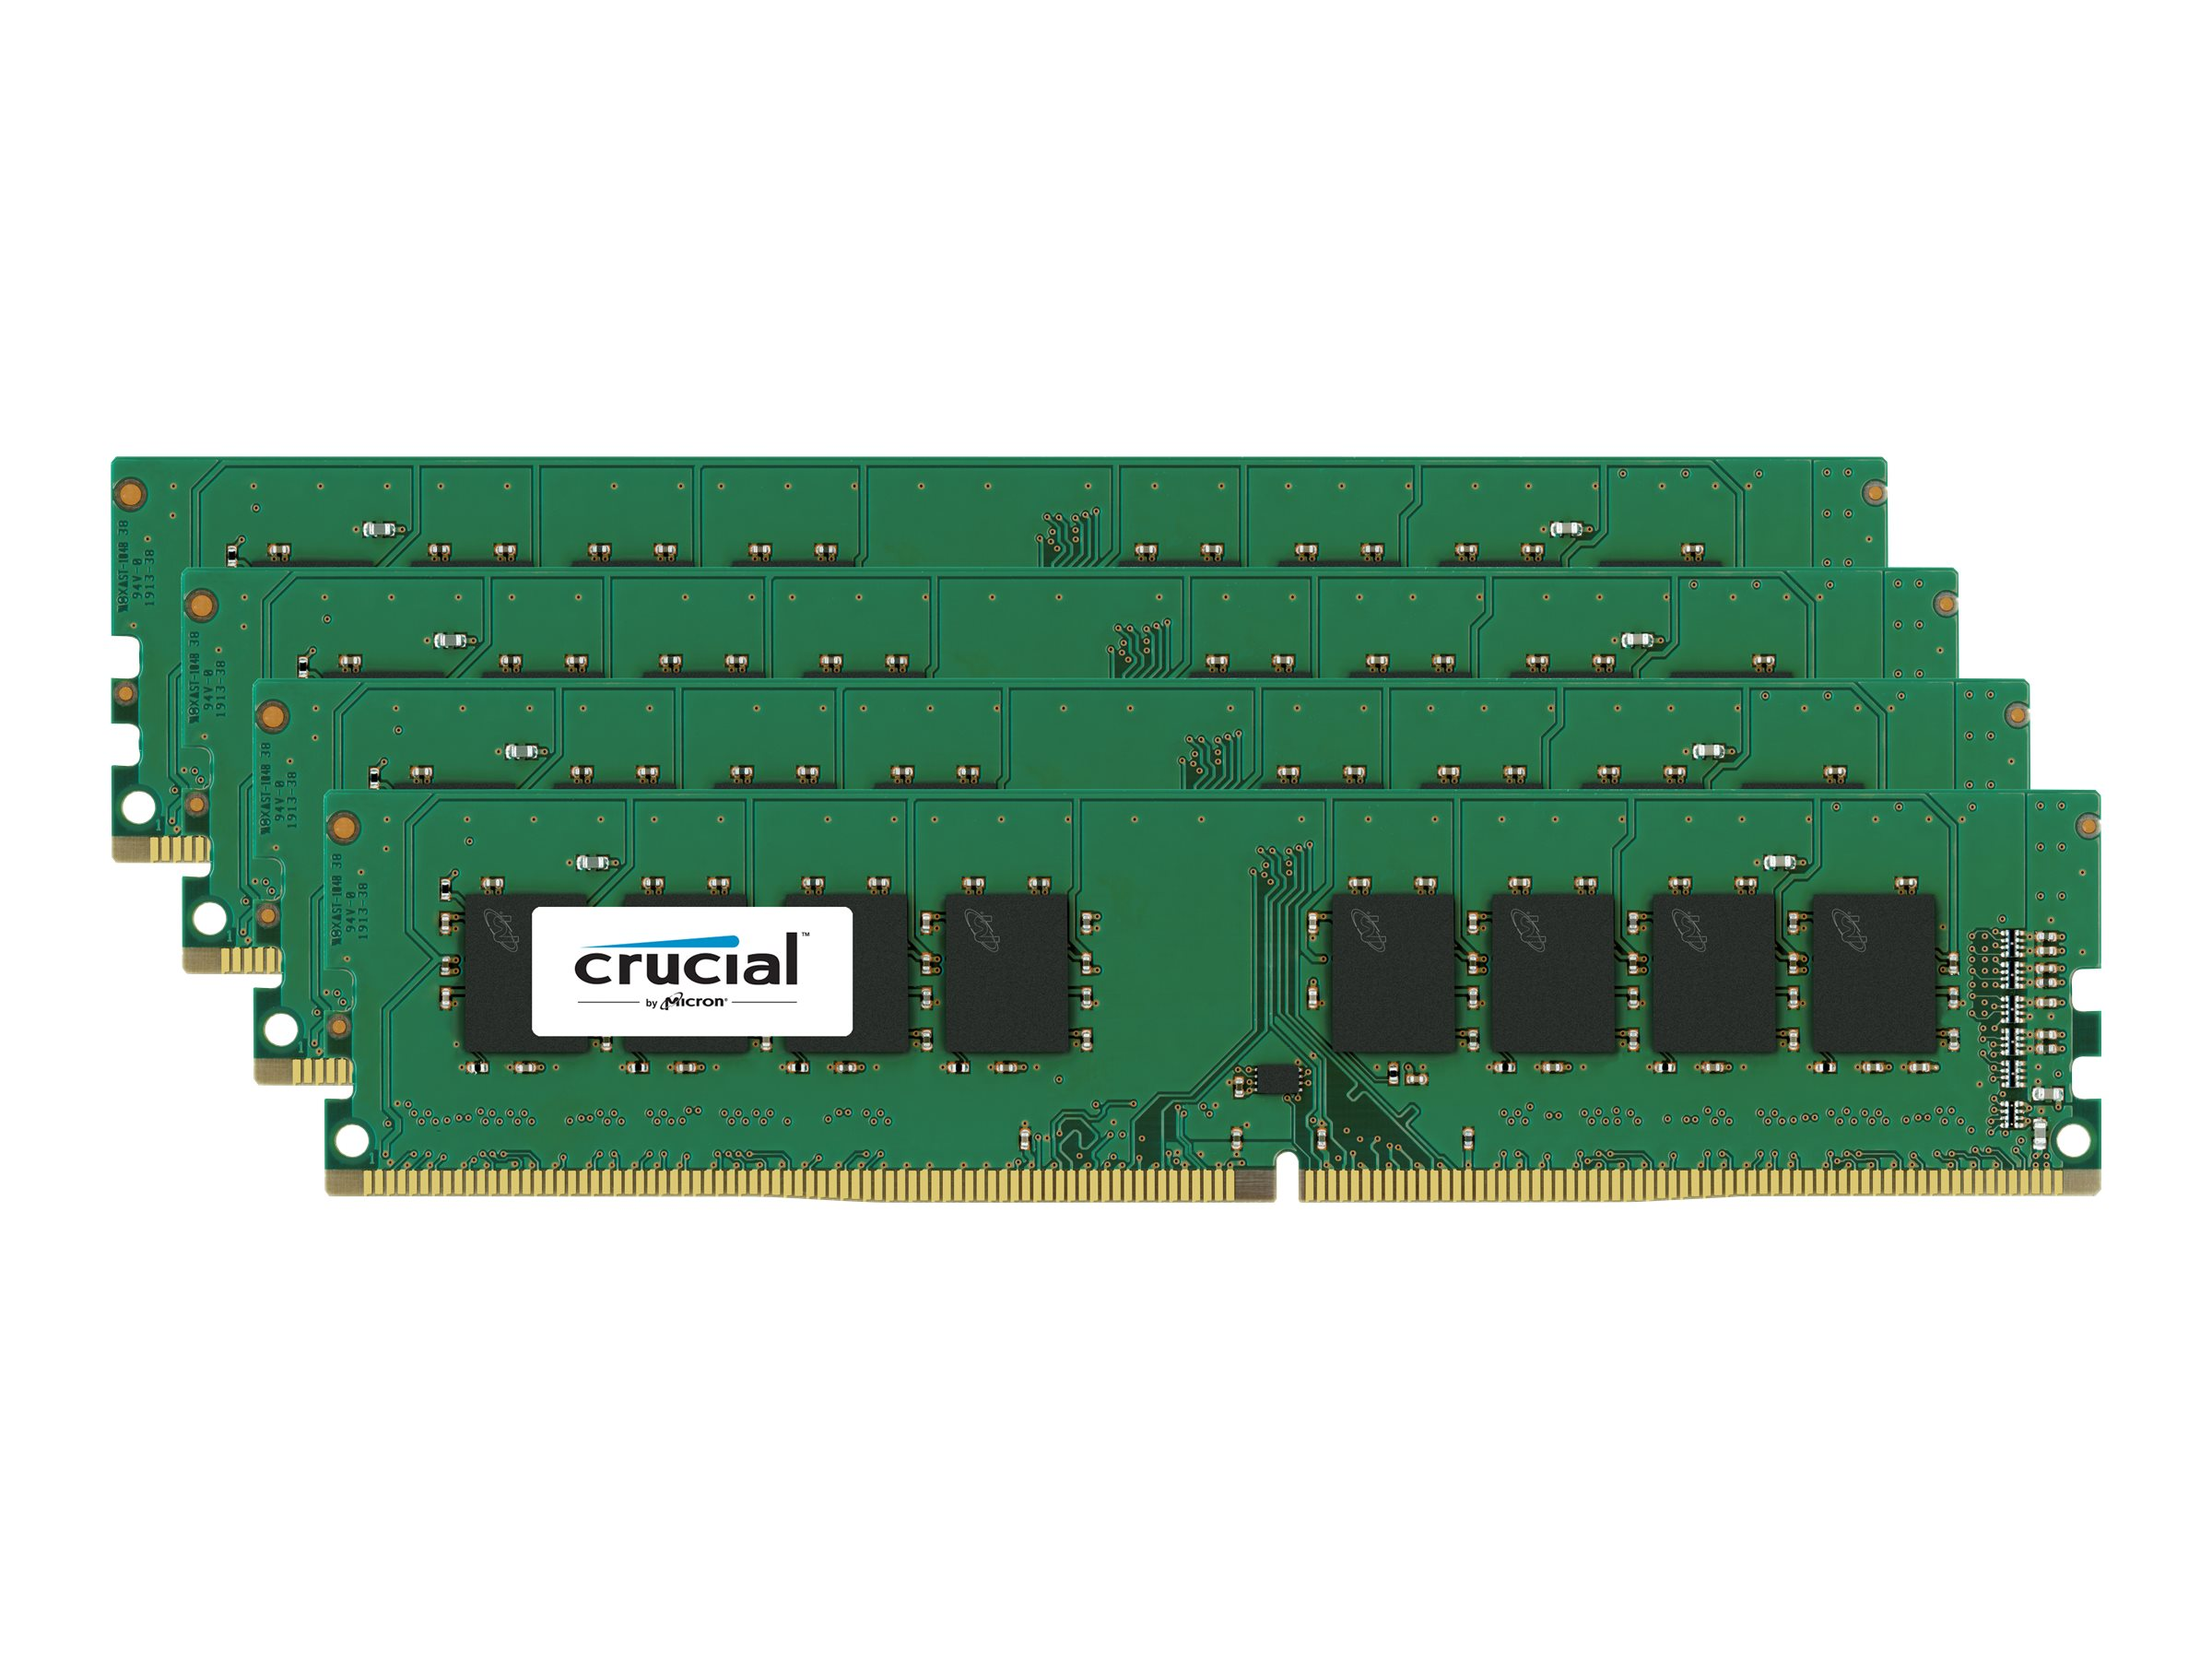 Crucial 32GB PC4-17000 288-pin DDR4 SDRAM DIMM Kit, CT4K8G4DFD8213, 17714317, Memory